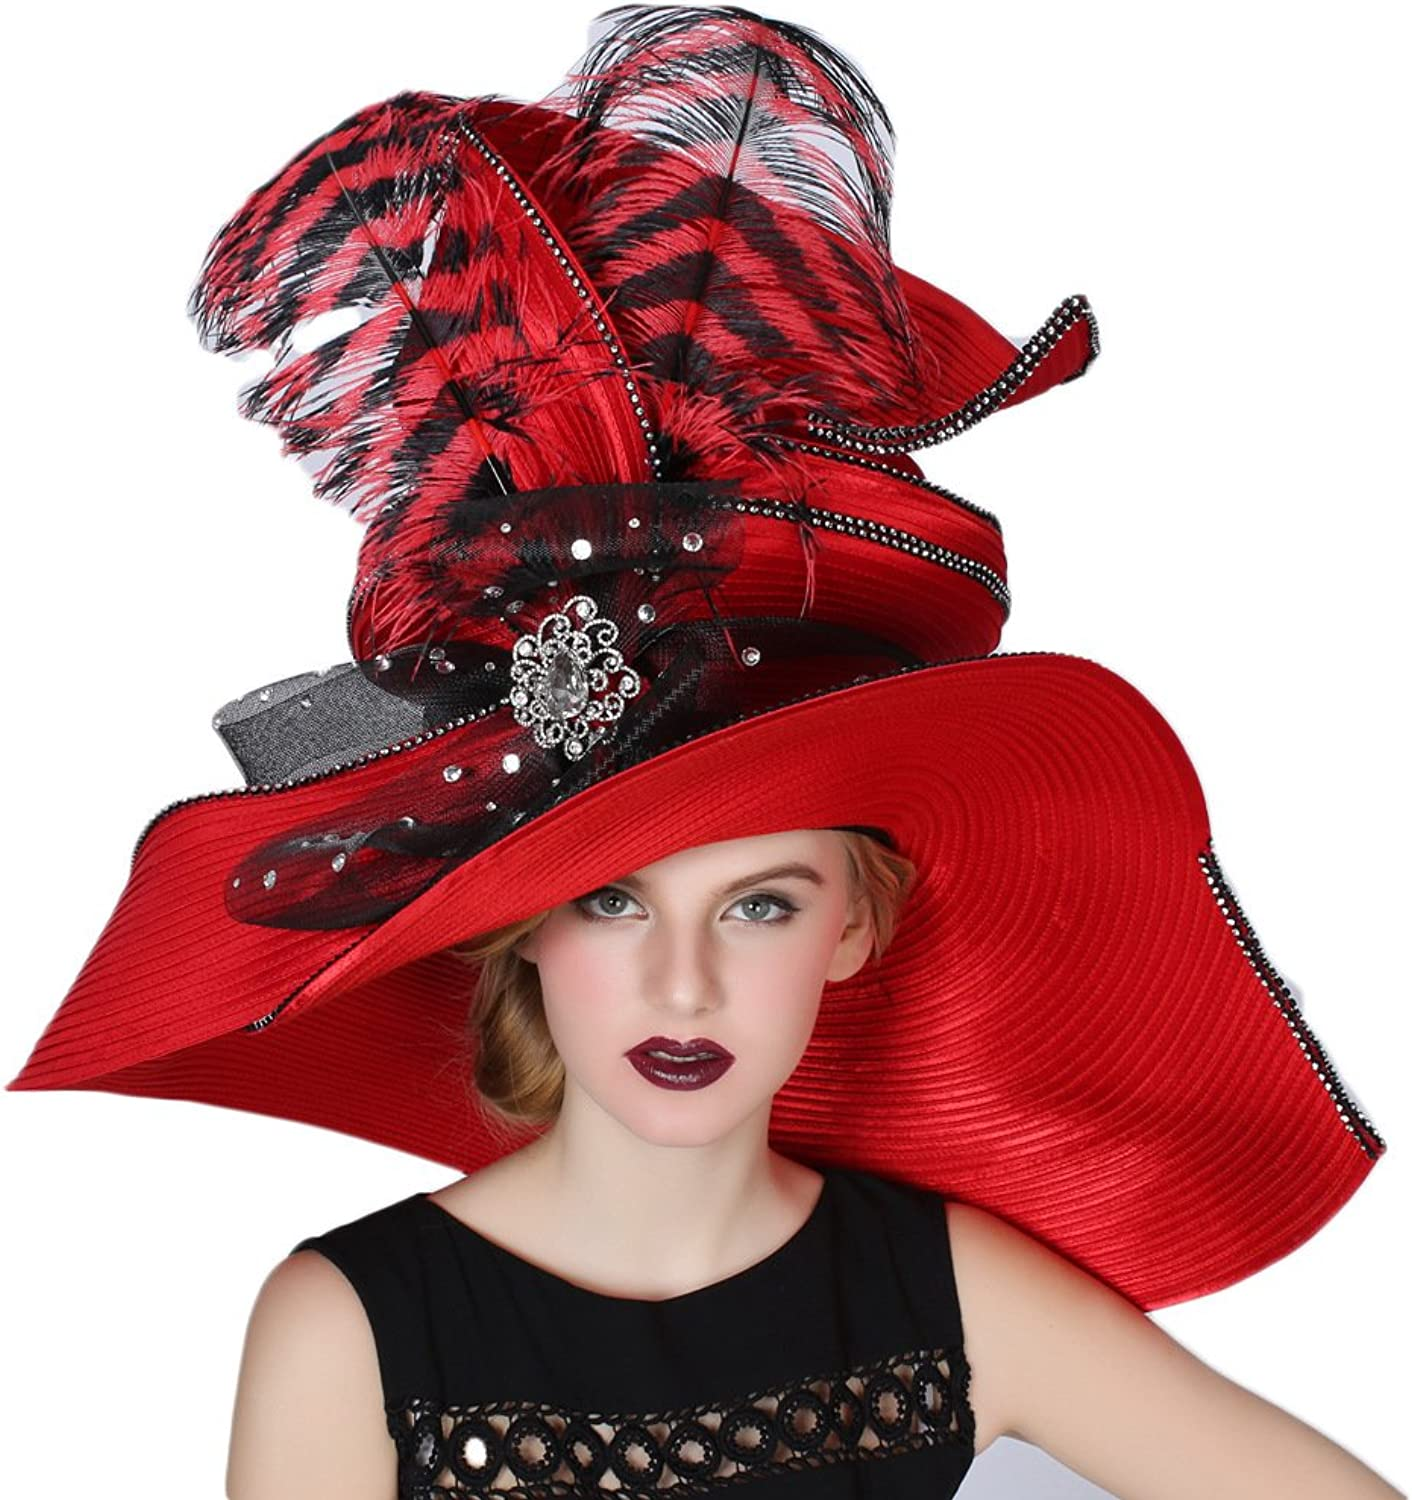 June's Young Women Hats Large Brim Large Feather Church Party Fedoras Red